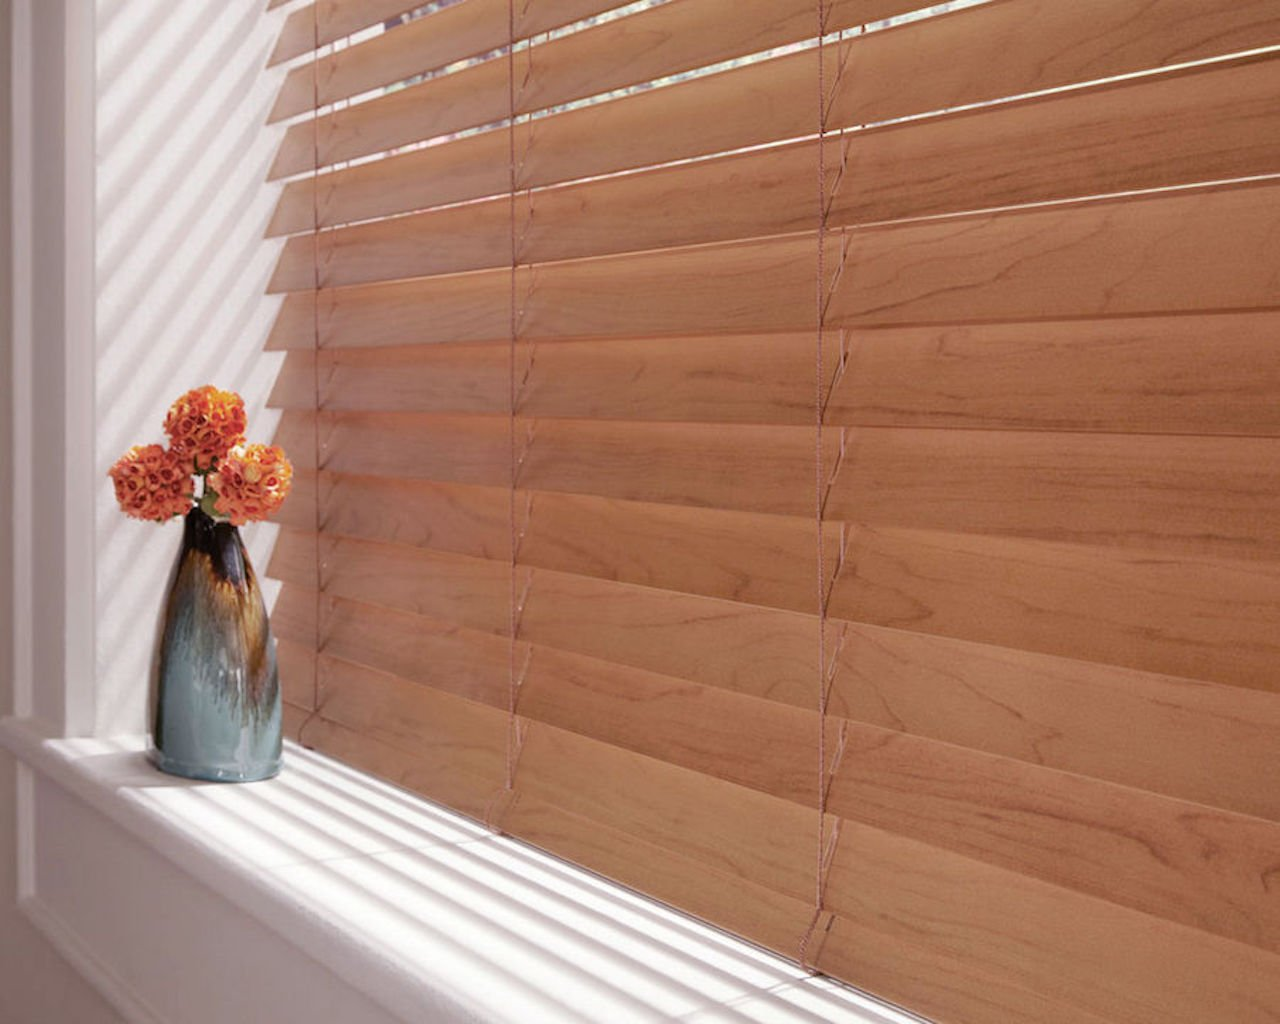 best place to buy window blinds shutters blinds parker shutters blind shutter storeparker co